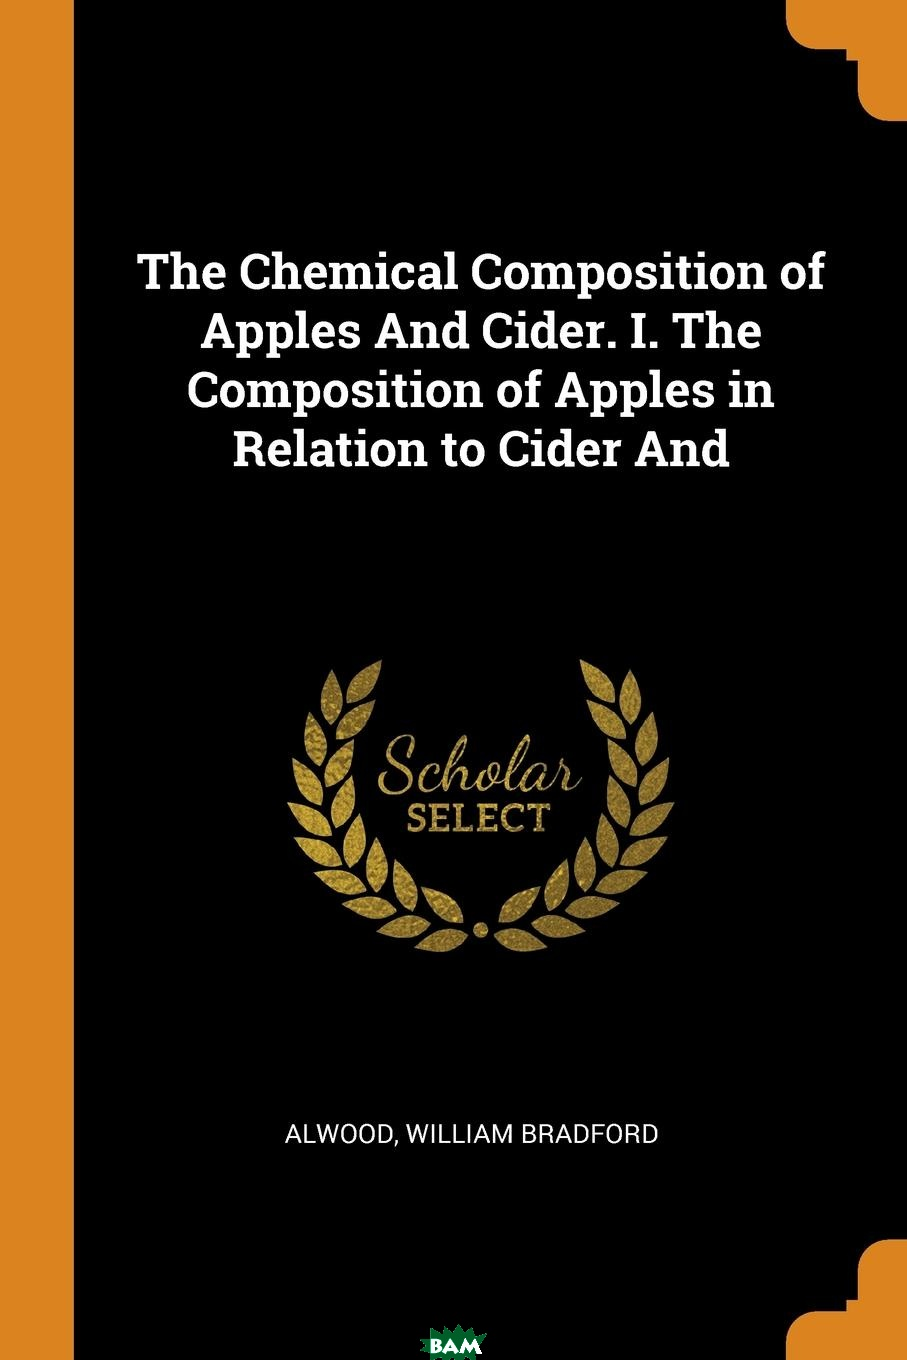 Купить The Chemical Composition of Apples And Cider. I. The Composition of Apples in Relation to Cider And, Alwood William Bradford, 9780341679080